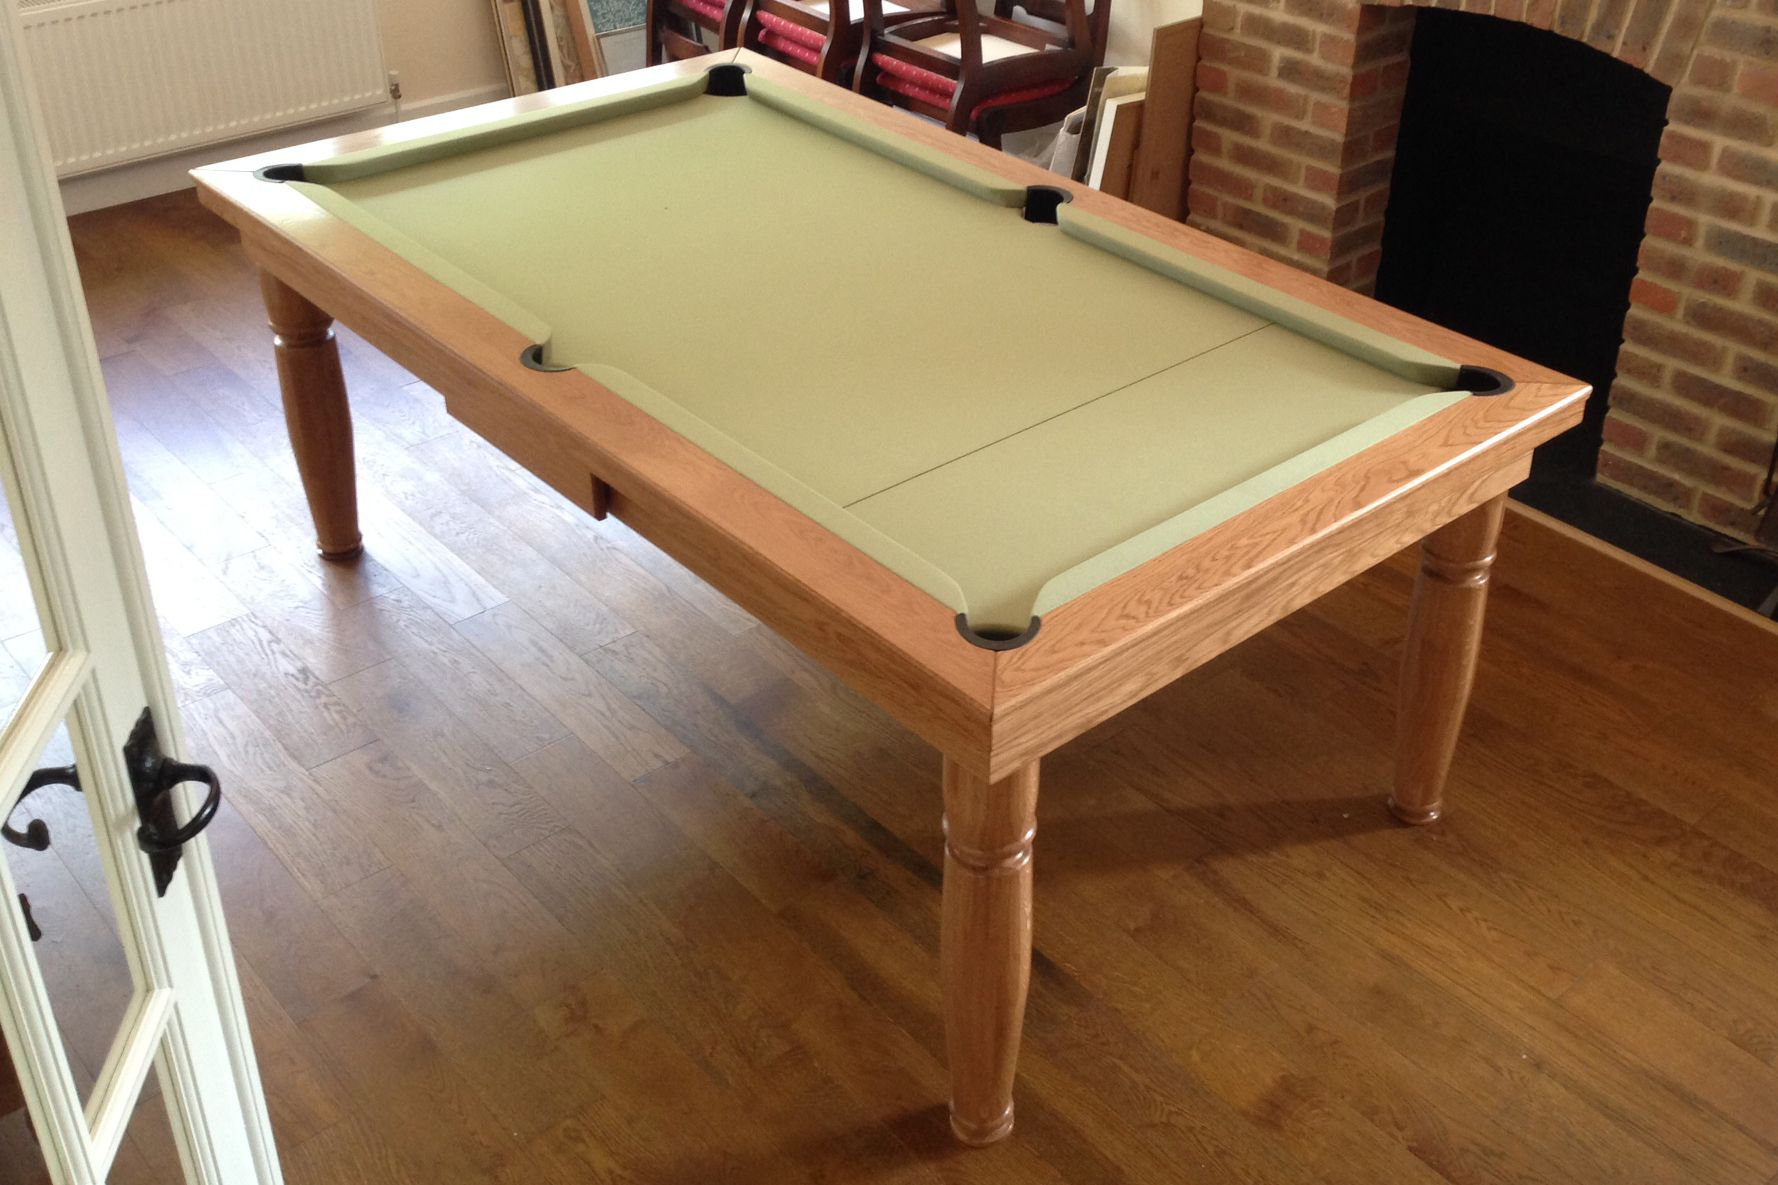 Oak Colour 5 With Hainsworth Smart Sage Cloth Www Luxury Pool Tables Co Uk Pool Table Dining Table Luxury Pool Modern Pool Table